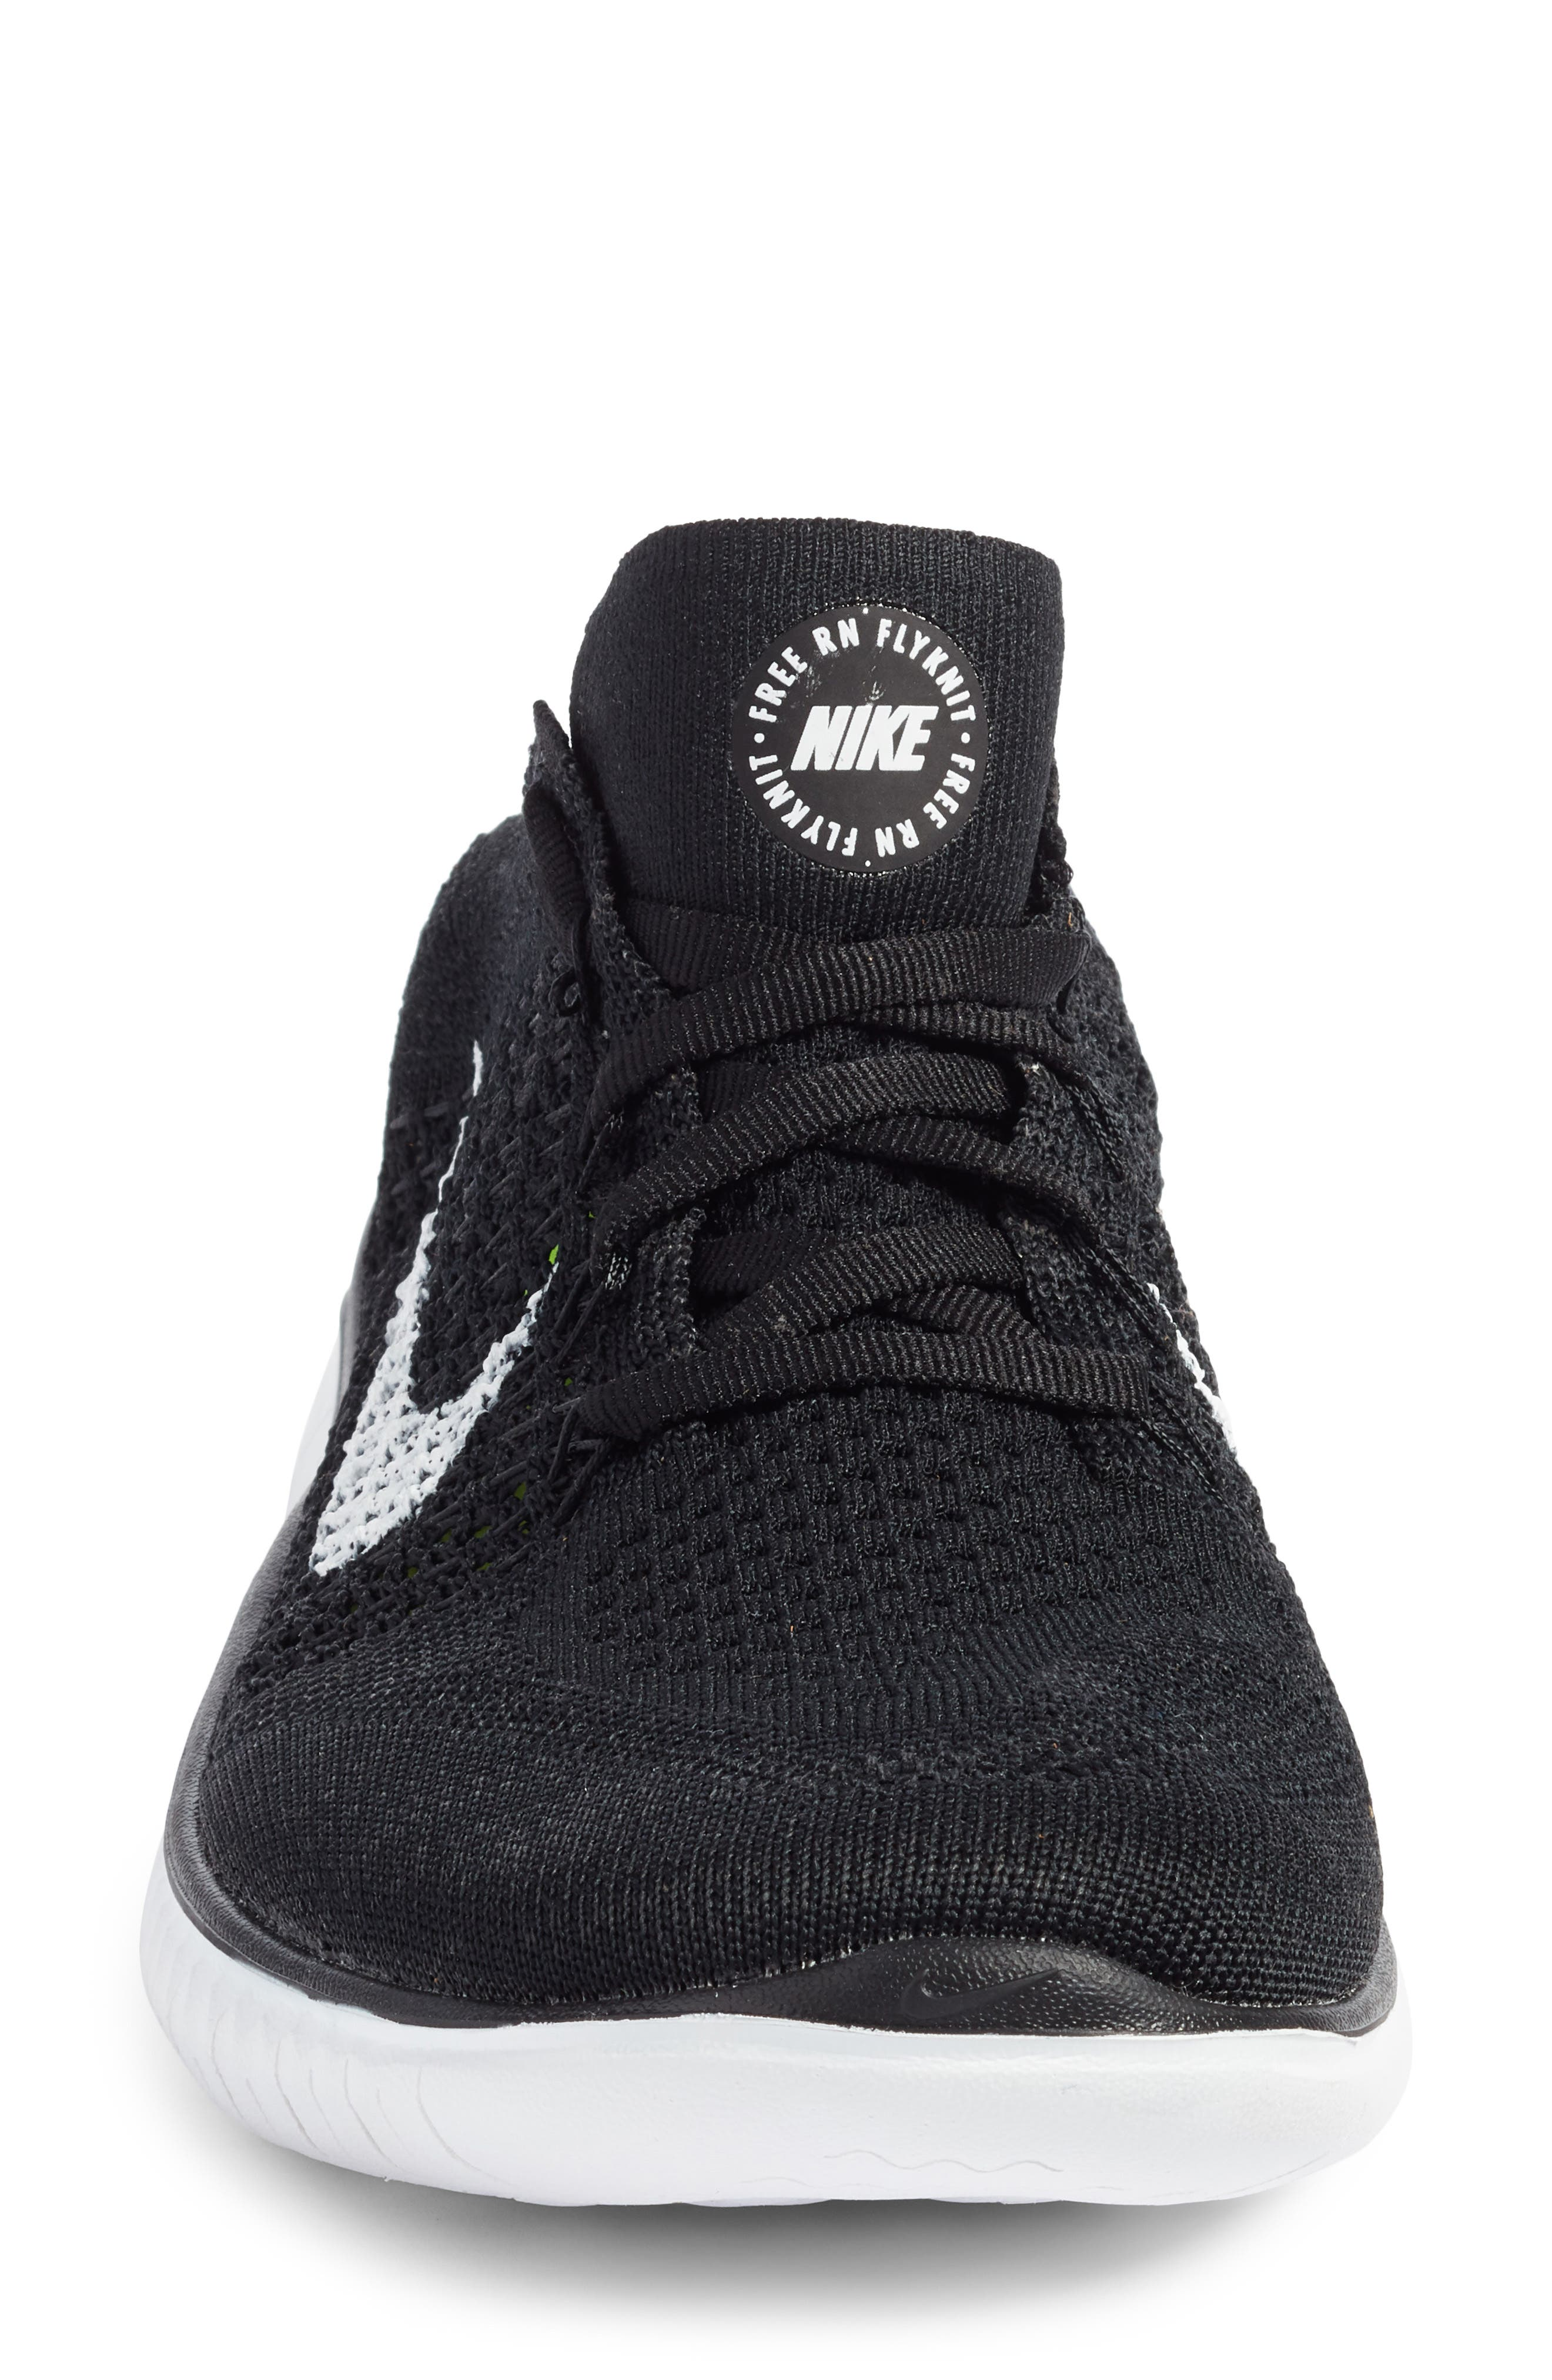 Free RN Flyknit 2018 Running Shoe,                             Alternate thumbnail 37, color,